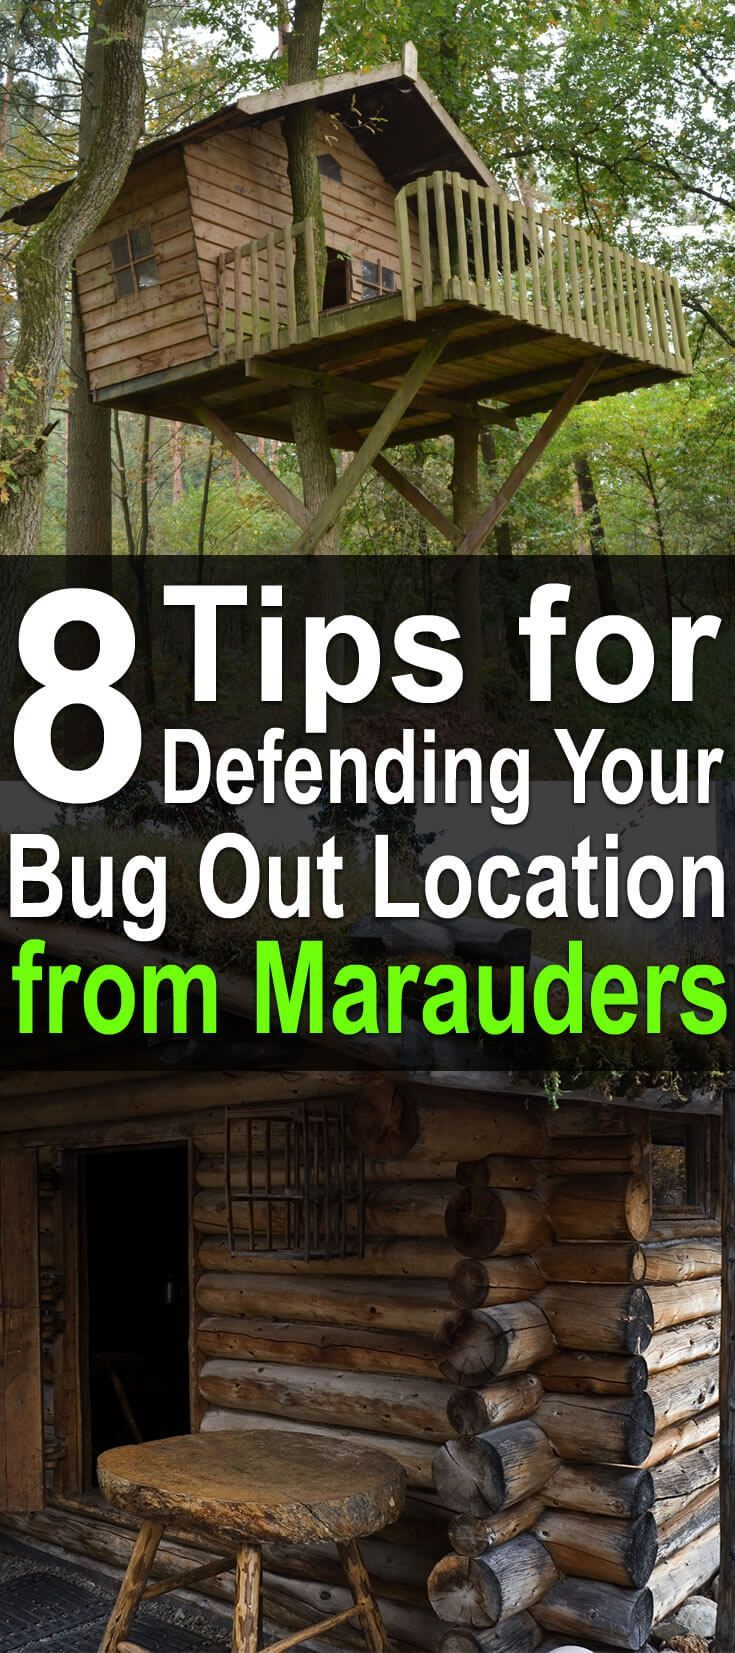 8 Tips for Defending Your Bug Out Location from Marauders. If you do have a bug out location (or are searching for one), you need to make sure you can defend it. Here are the top factors you need to take into consideration when it comes to defending a bug out location. | Posted by: SurvivalofthePrepped.com